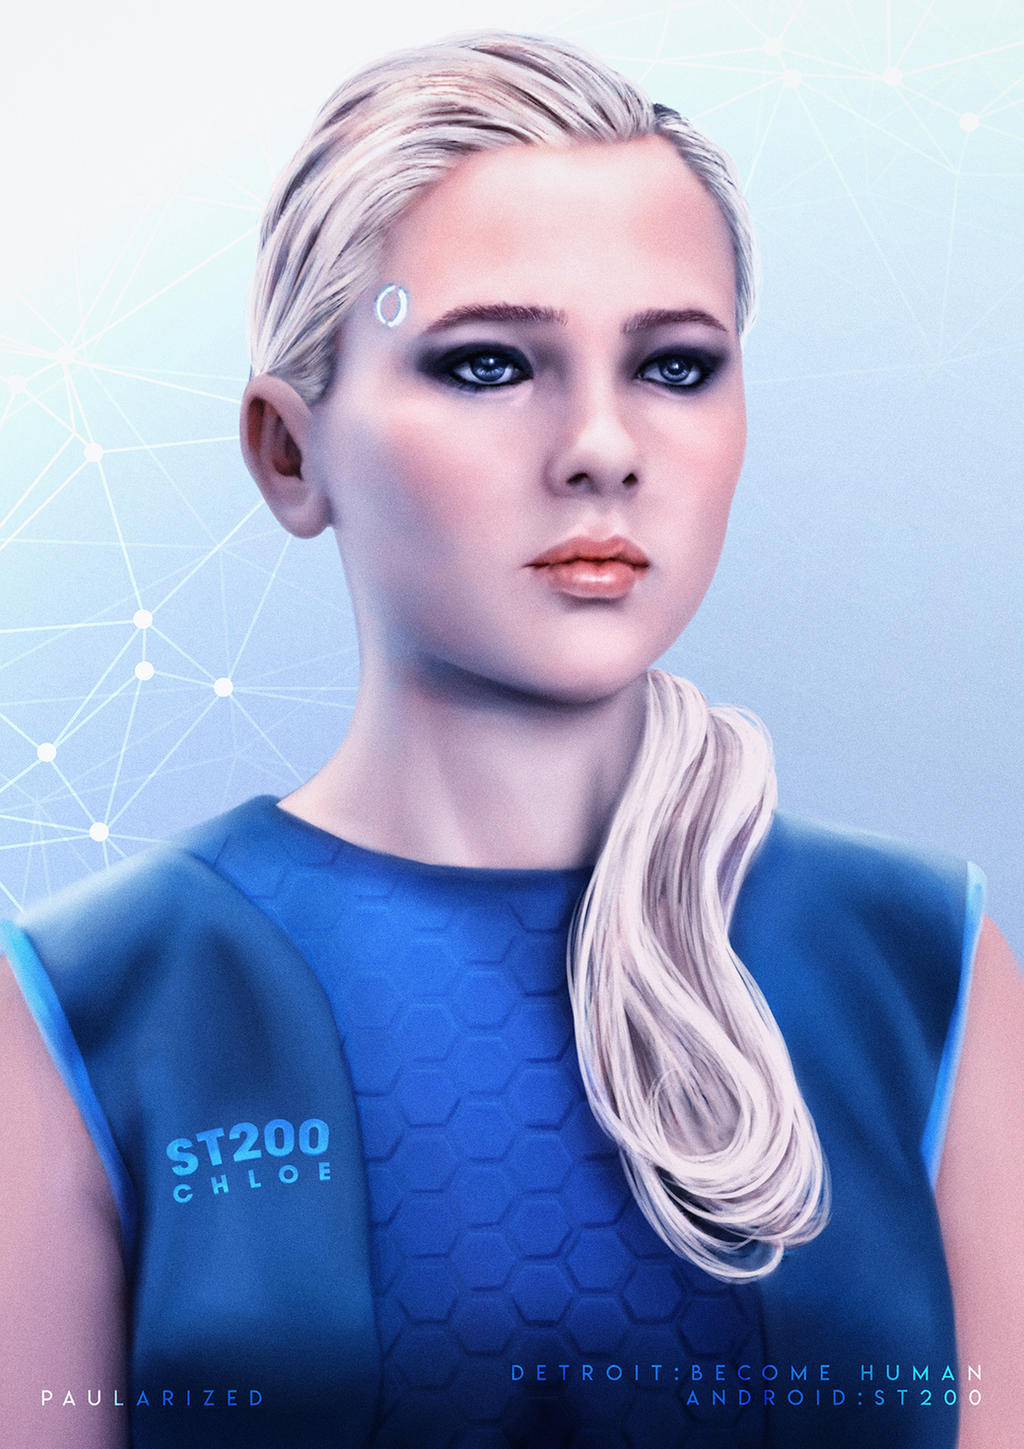 Detroit Become Human Android Chloe By Paularized On Deviantart